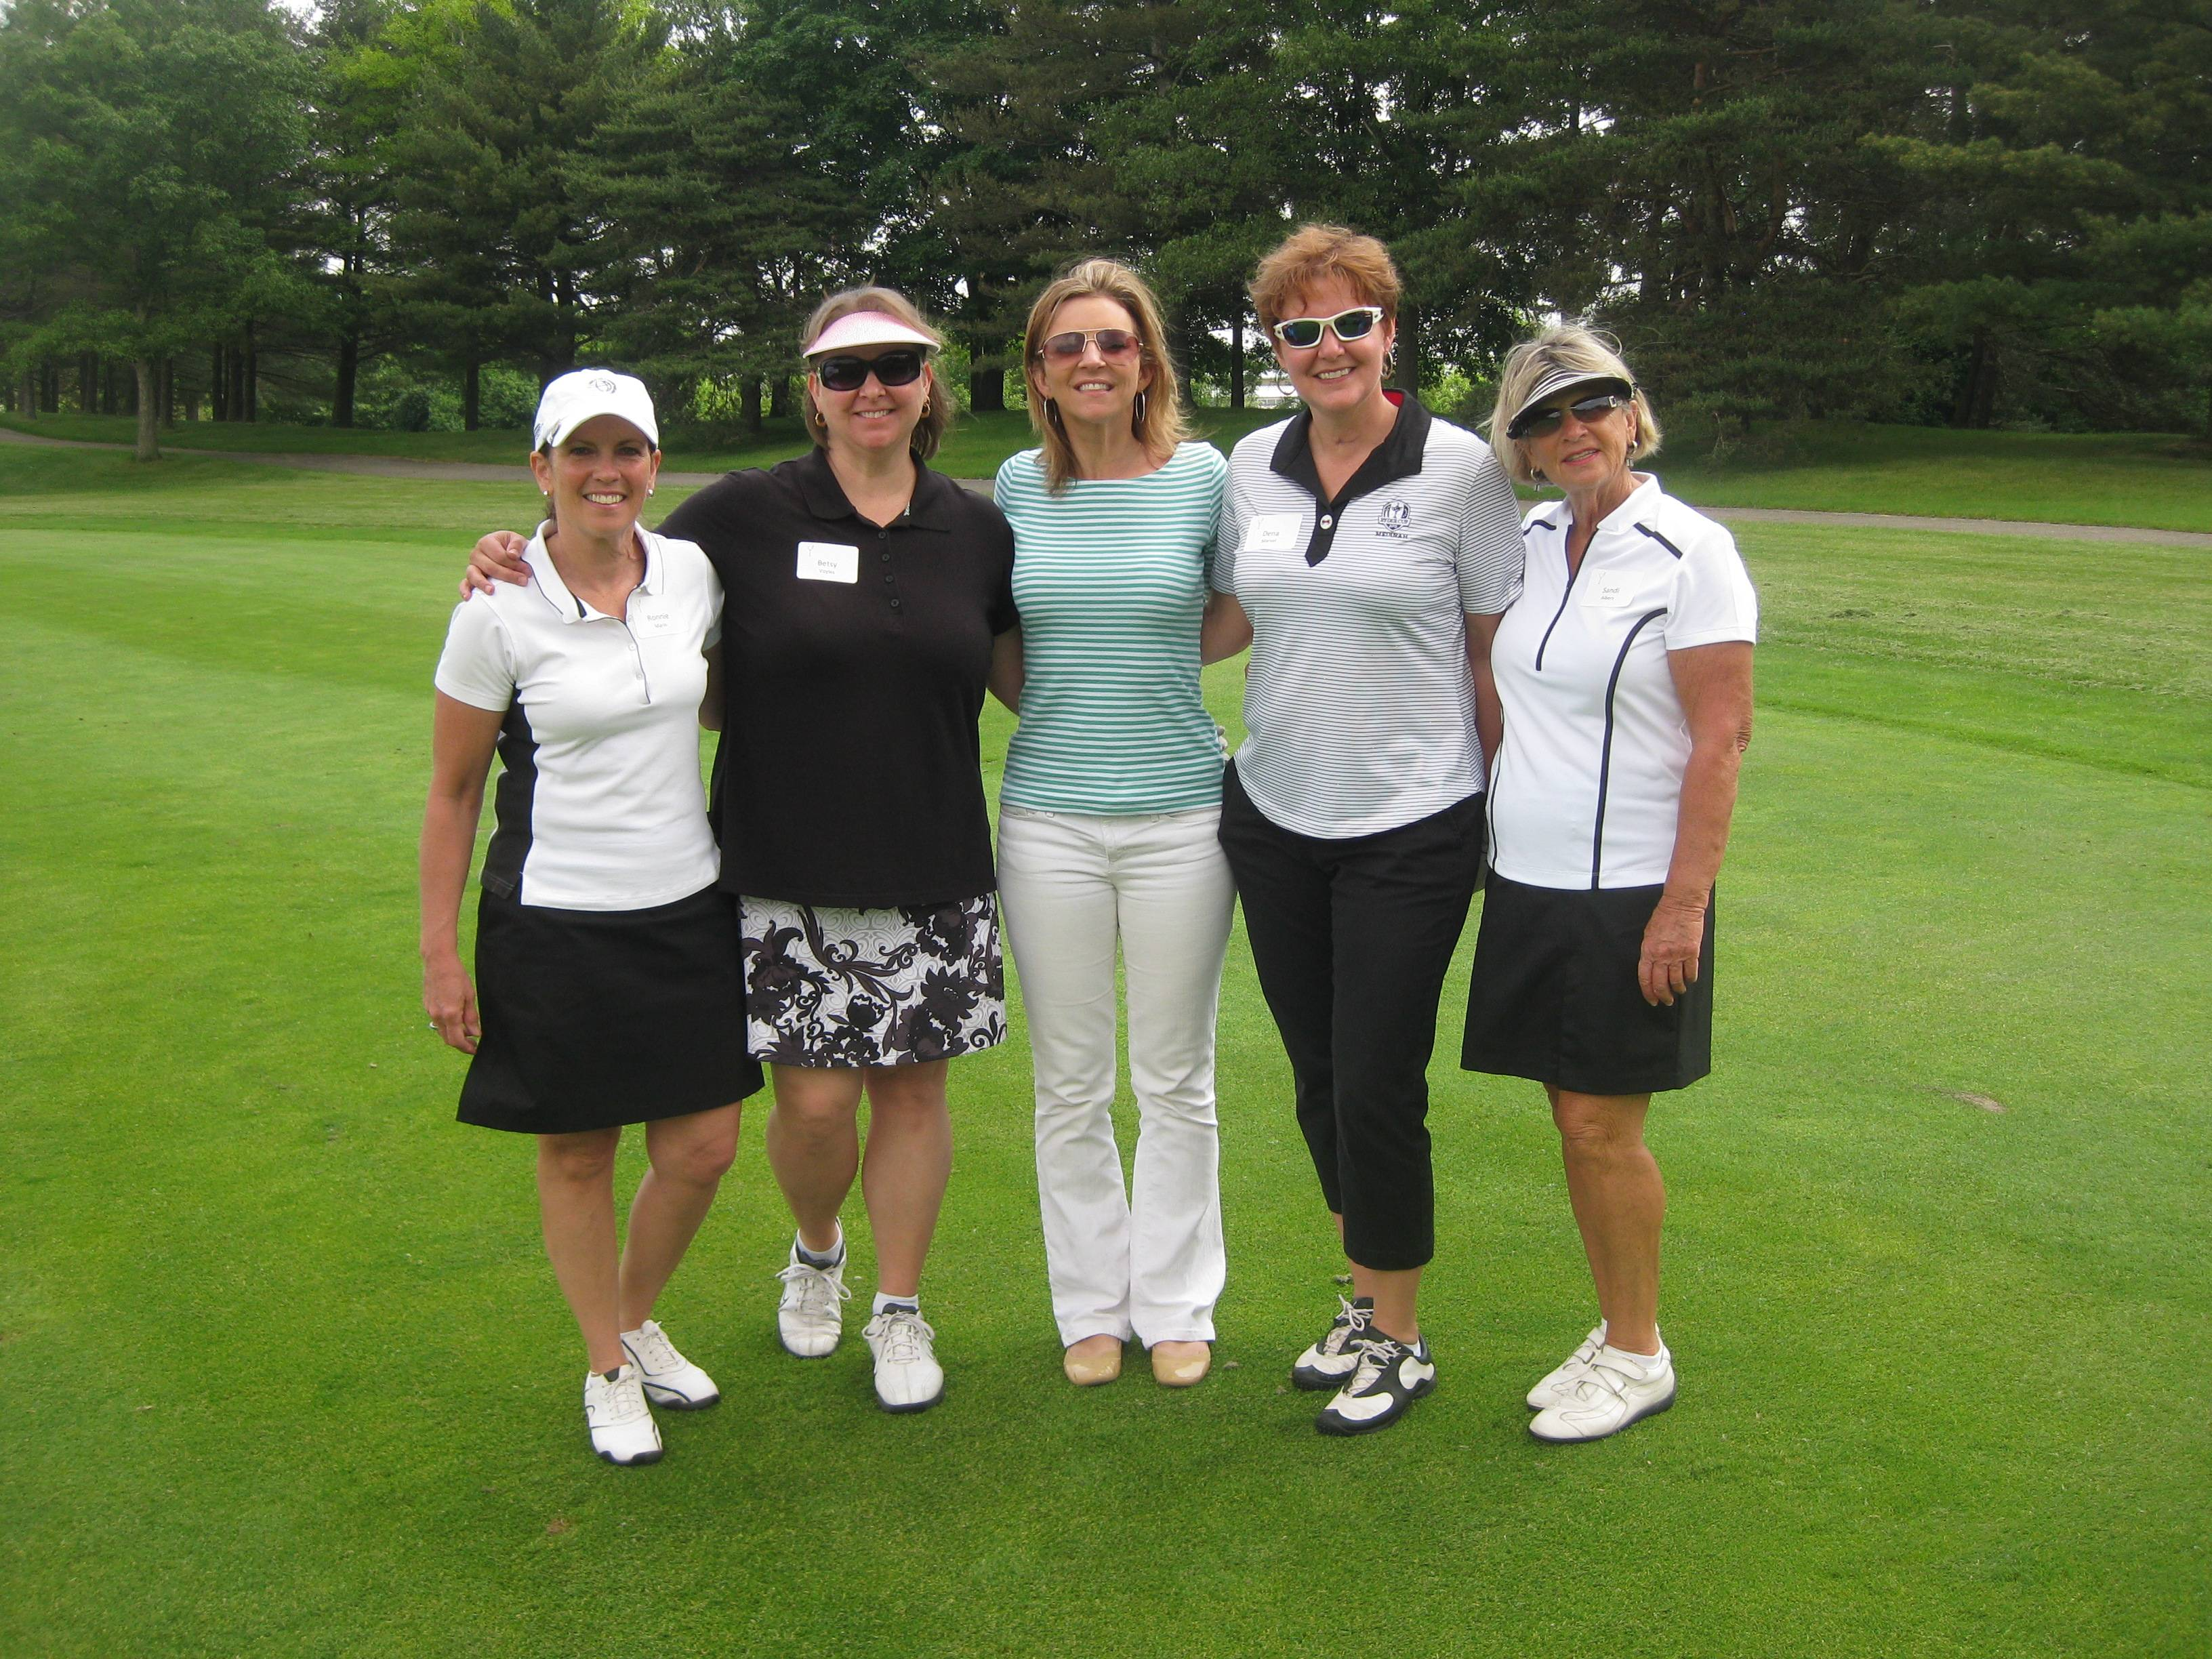 (From left to right) Ronnie Marin, Betsy Voyles, Dena Marvel and Sandi Albers pose with Kathy Hart, co-host of The Eric & Kathy Show on 101.9 fm THE MIX, at last year's Clearbrook Women's Classic.Clearbrook